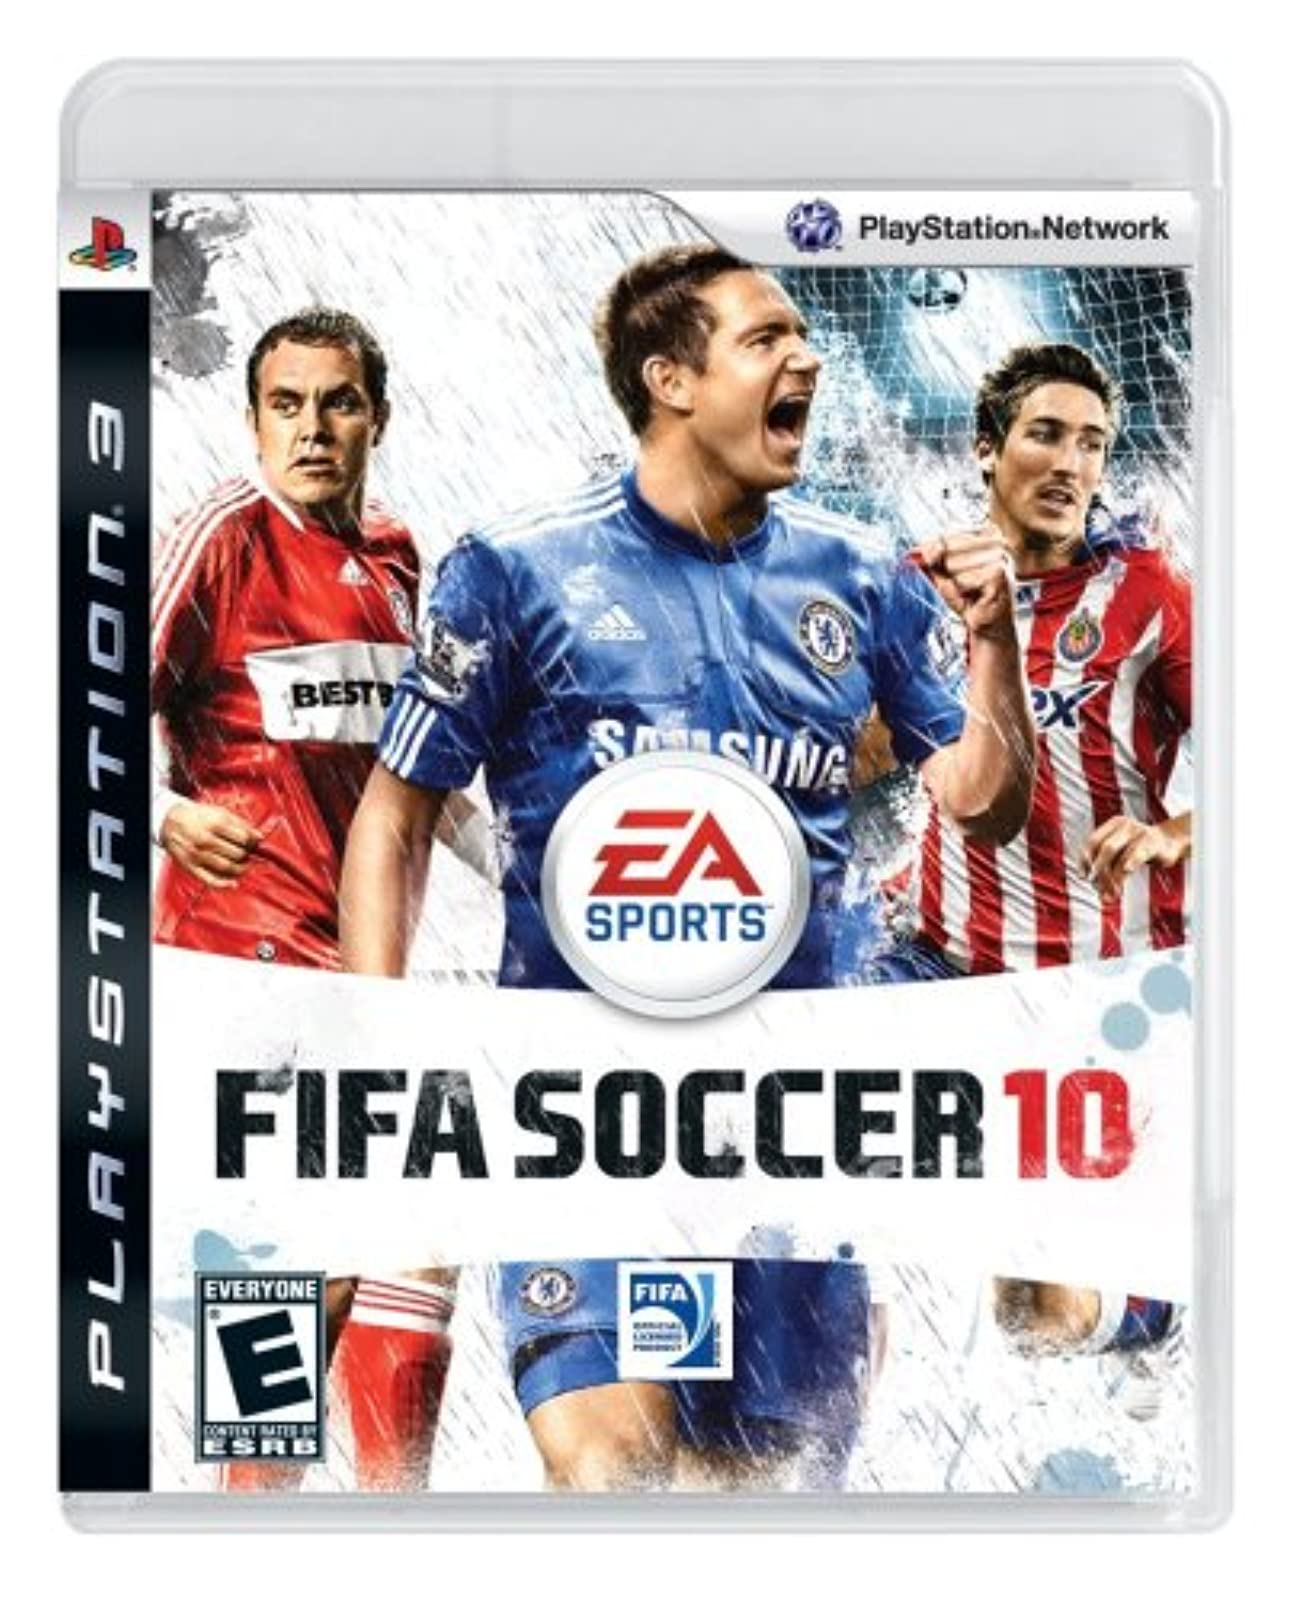 FIFA Soccer 10 For PlayStation 3 PS3